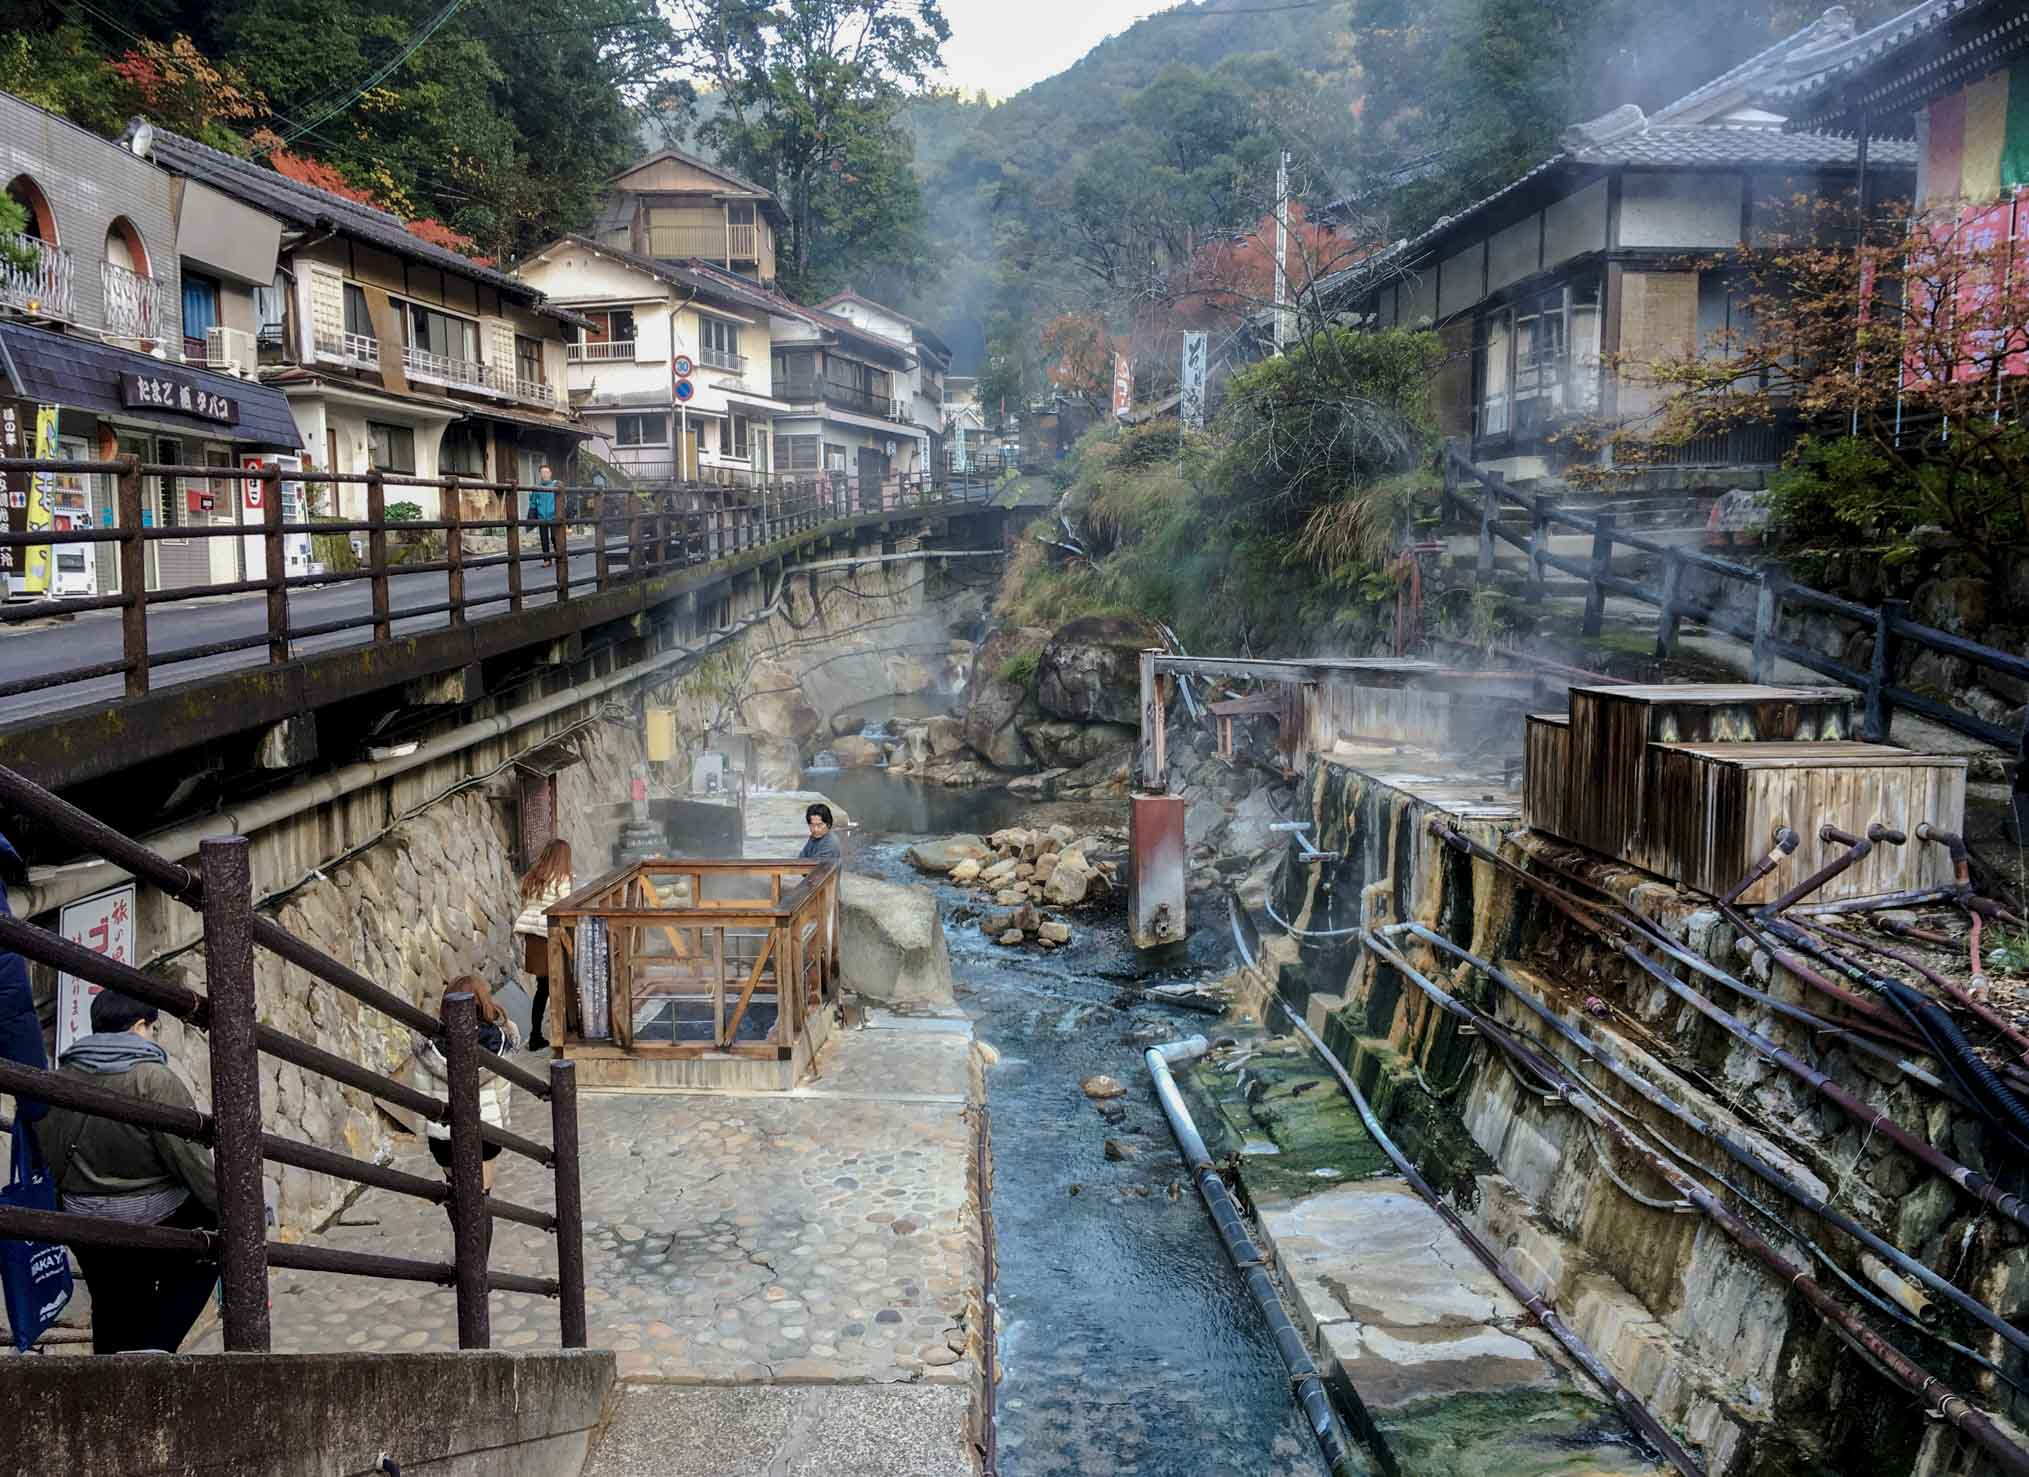 Yunomine Onsen Town - All Our Travel Tips To Visit This UNESCO World Heritage Site